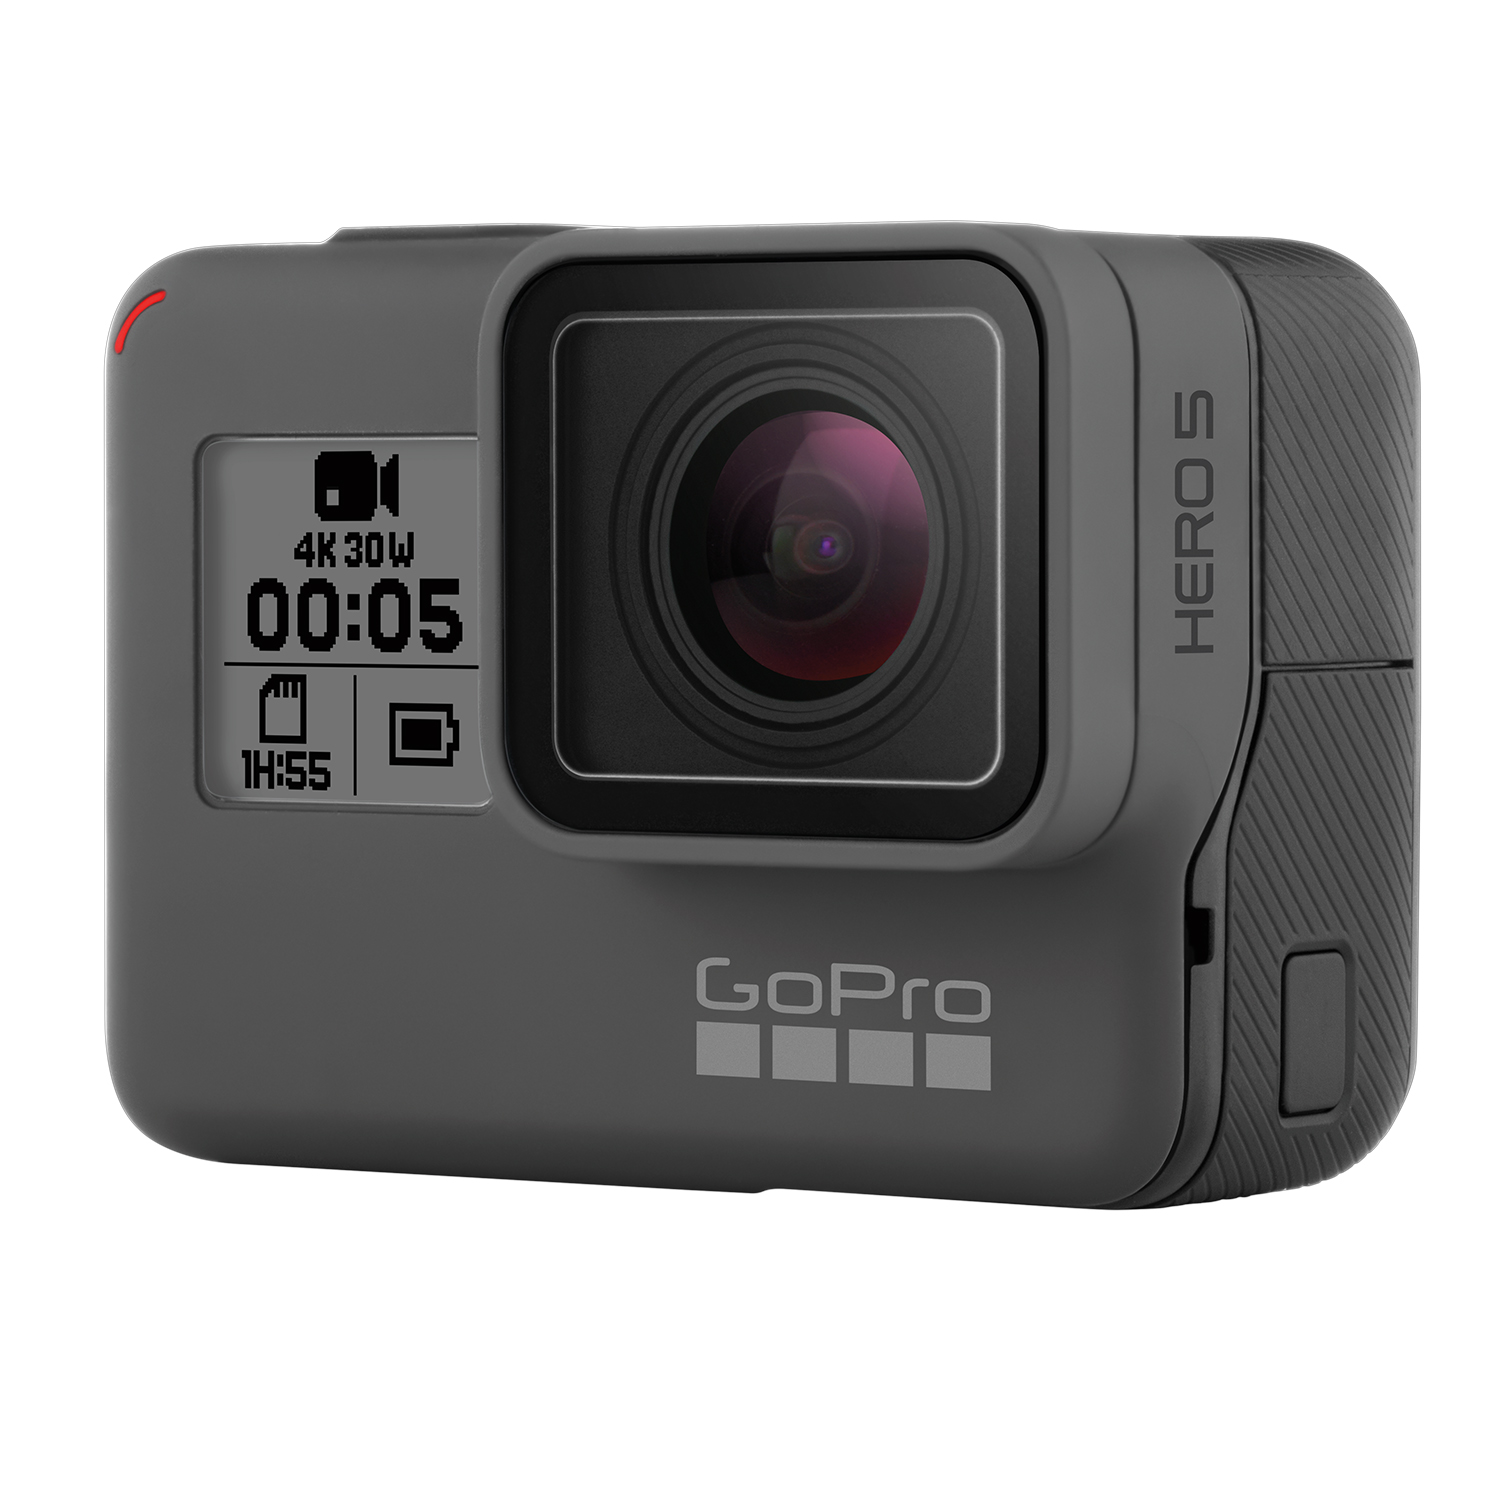 GoPro HERO5 Black Camera Image 1 of 8